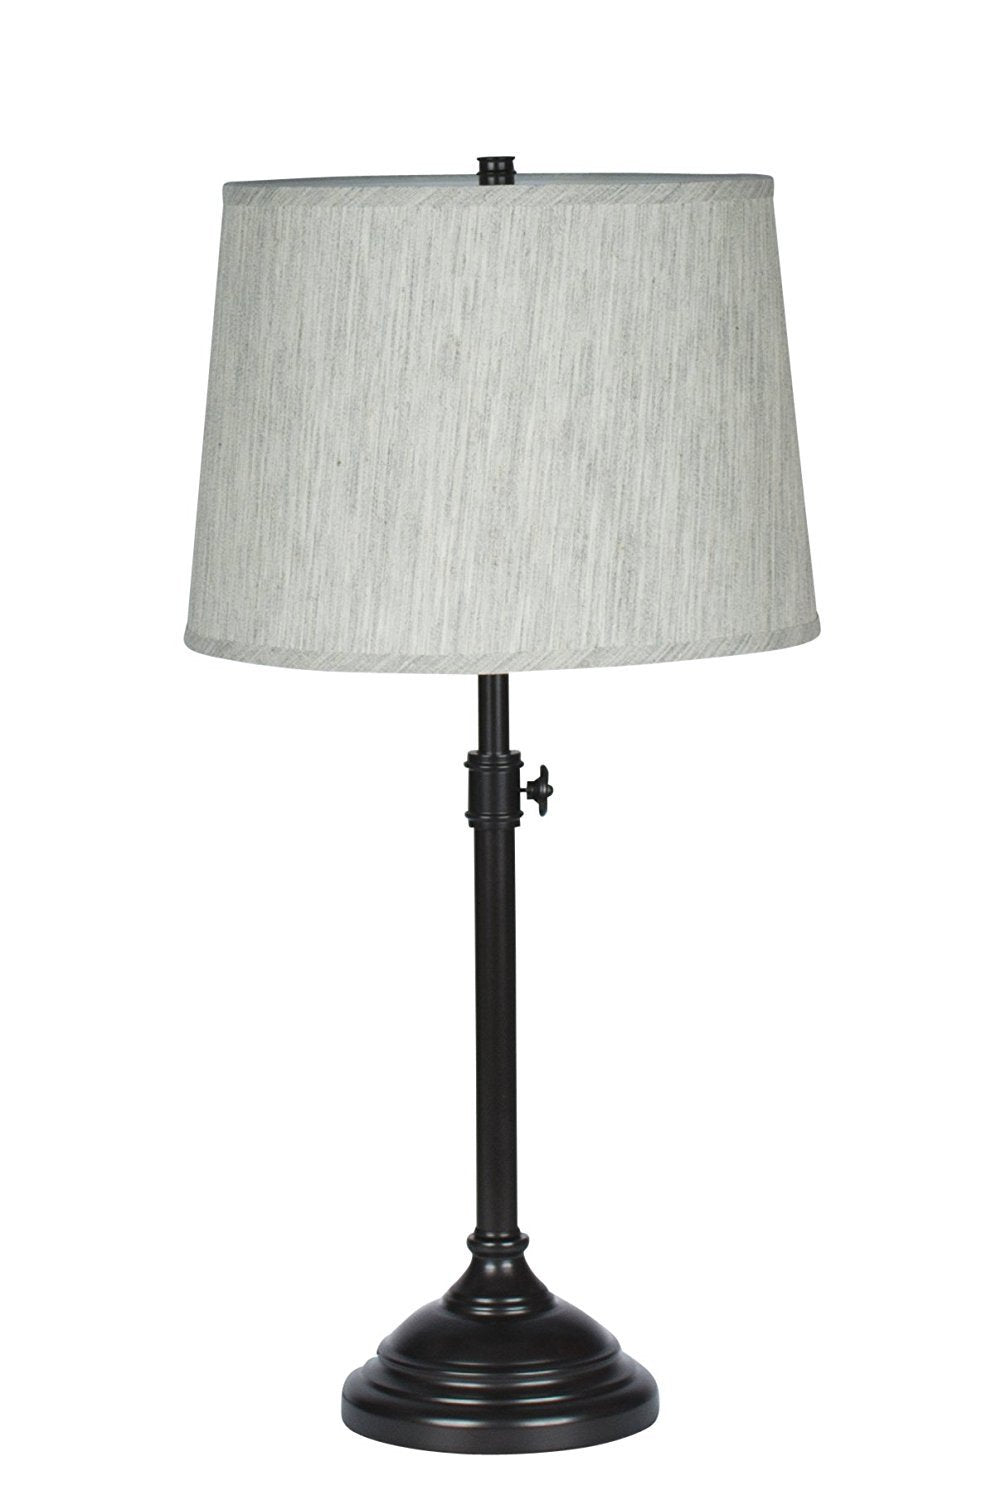 Bon Windsor Adjustable Table Lamp, Oil Rubbed Bronze Finish Lamp Base With Gray  Tone Natural